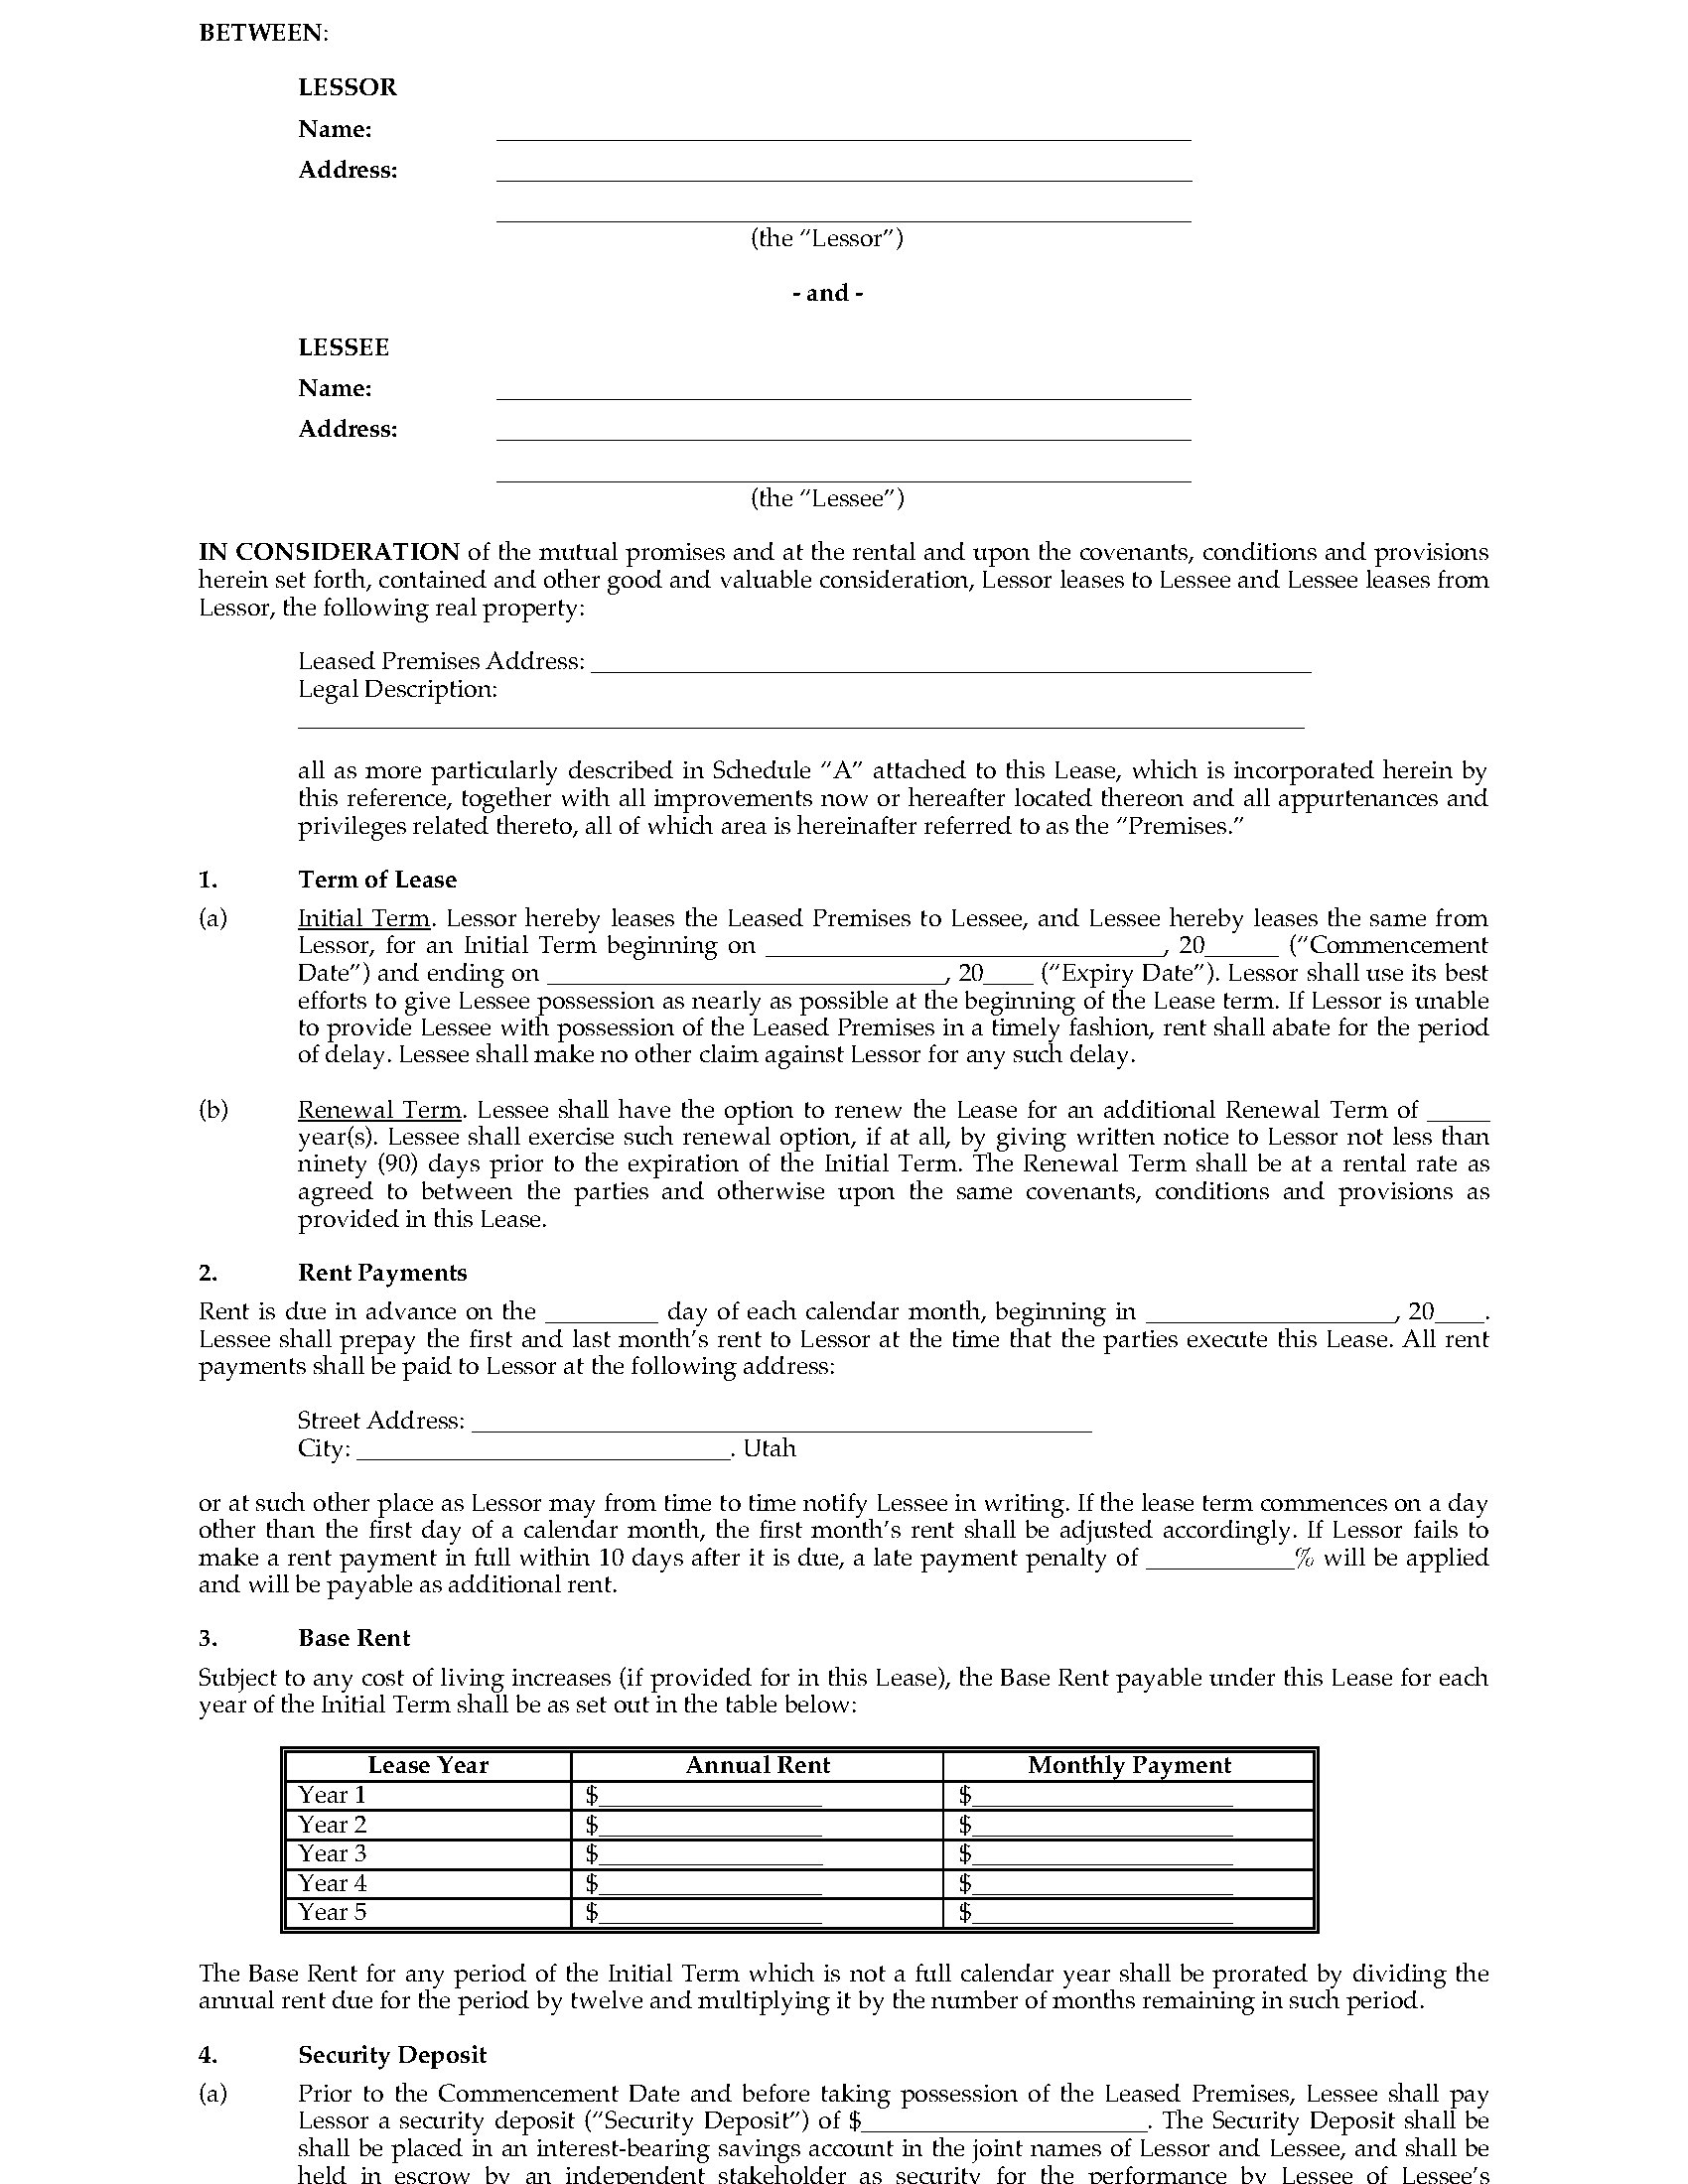 utah commercial triple net lease agreement legal forms and business templates. Black Bedroom Furniture Sets. Home Design Ideas